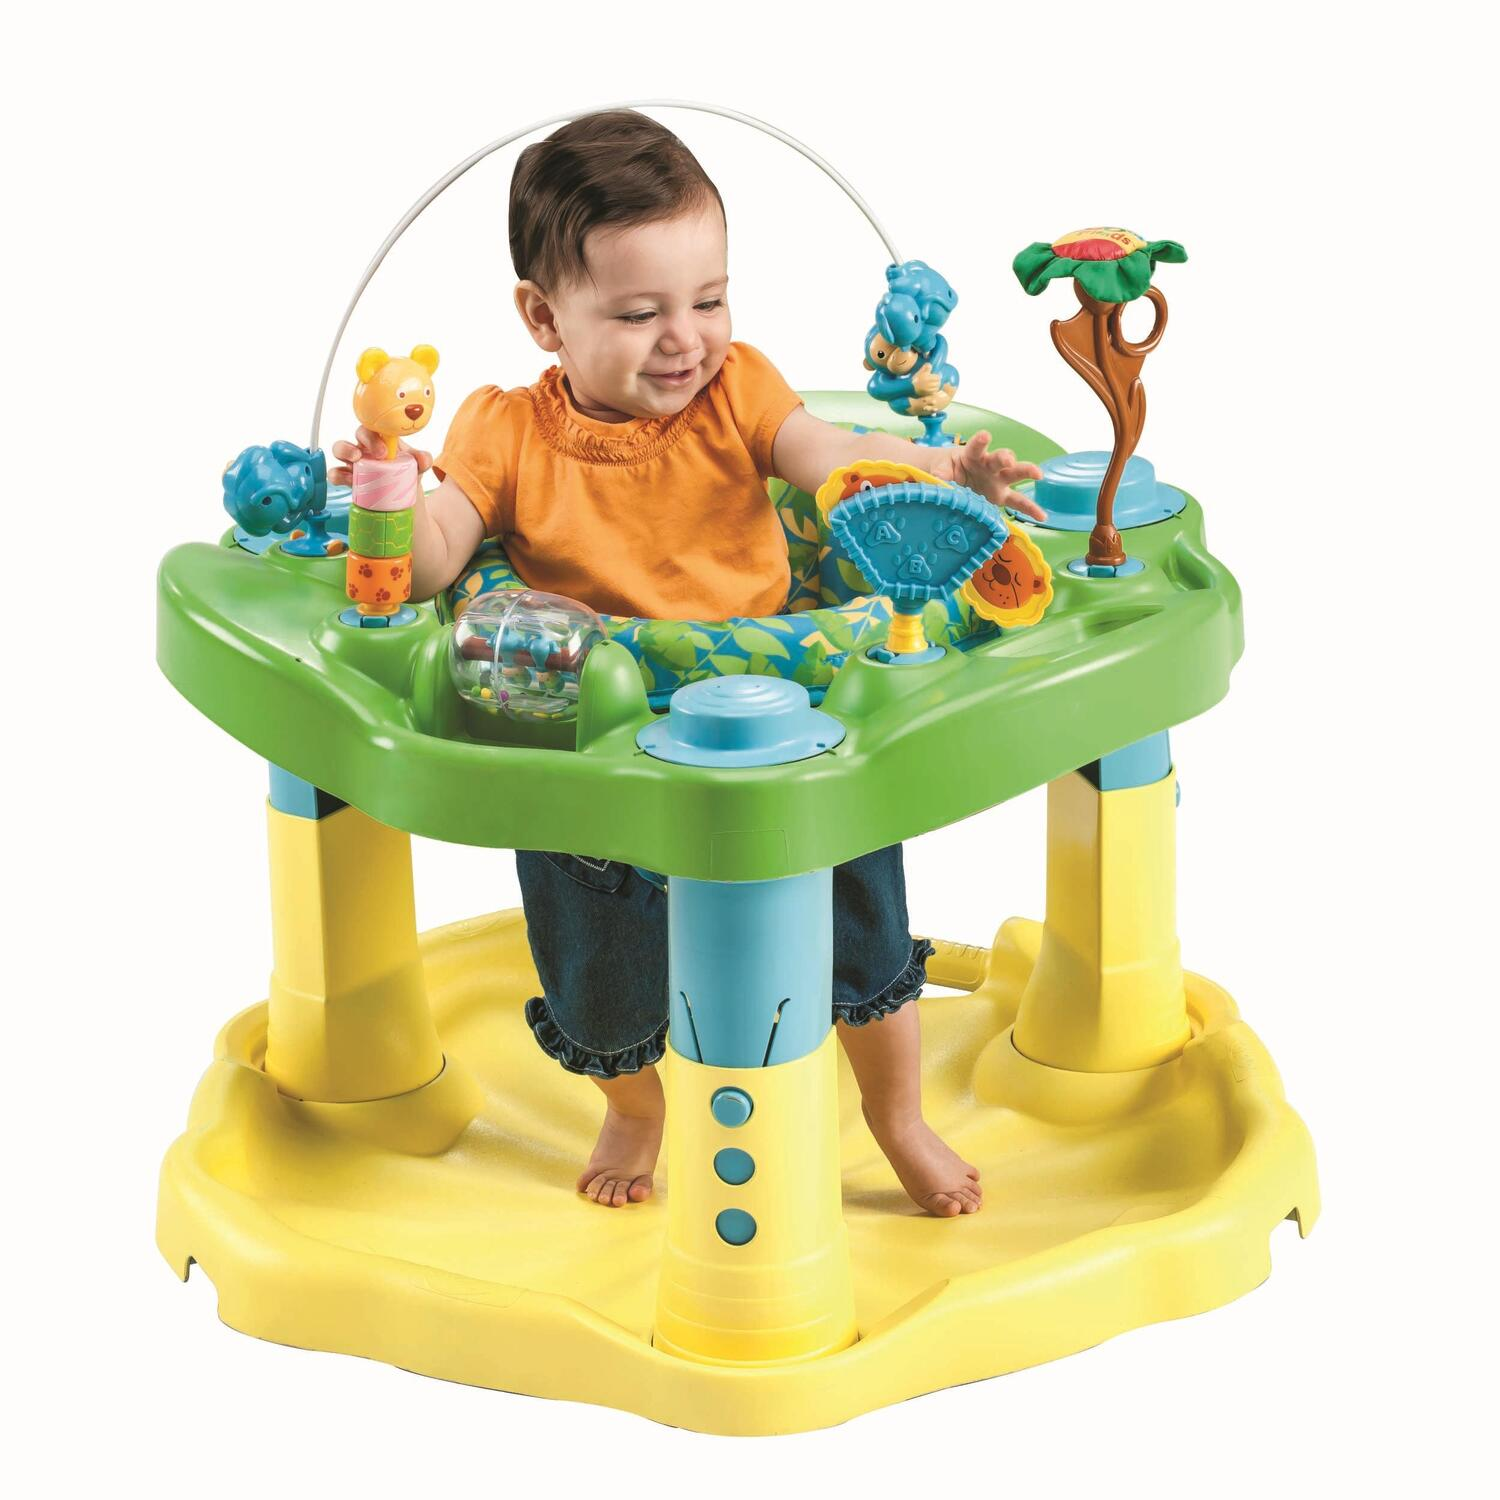 Evenflo Exersaucer Bounce Amp Learn Beach Baby Or Zoo